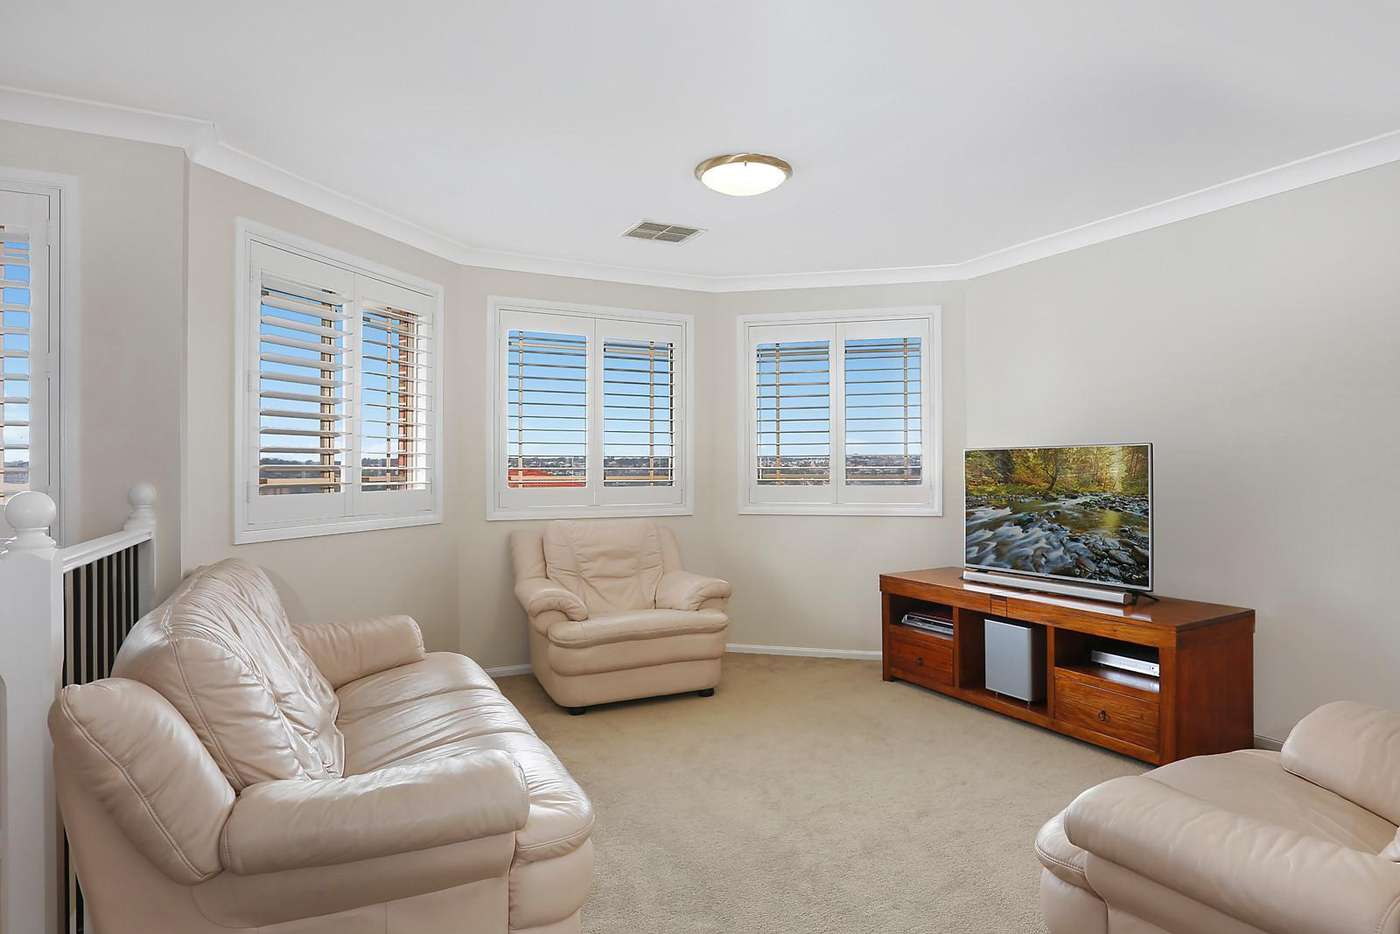 Sixth view of Homely house listing, 43 Kalbarri Crescent, Bow Bowing NSW 2566